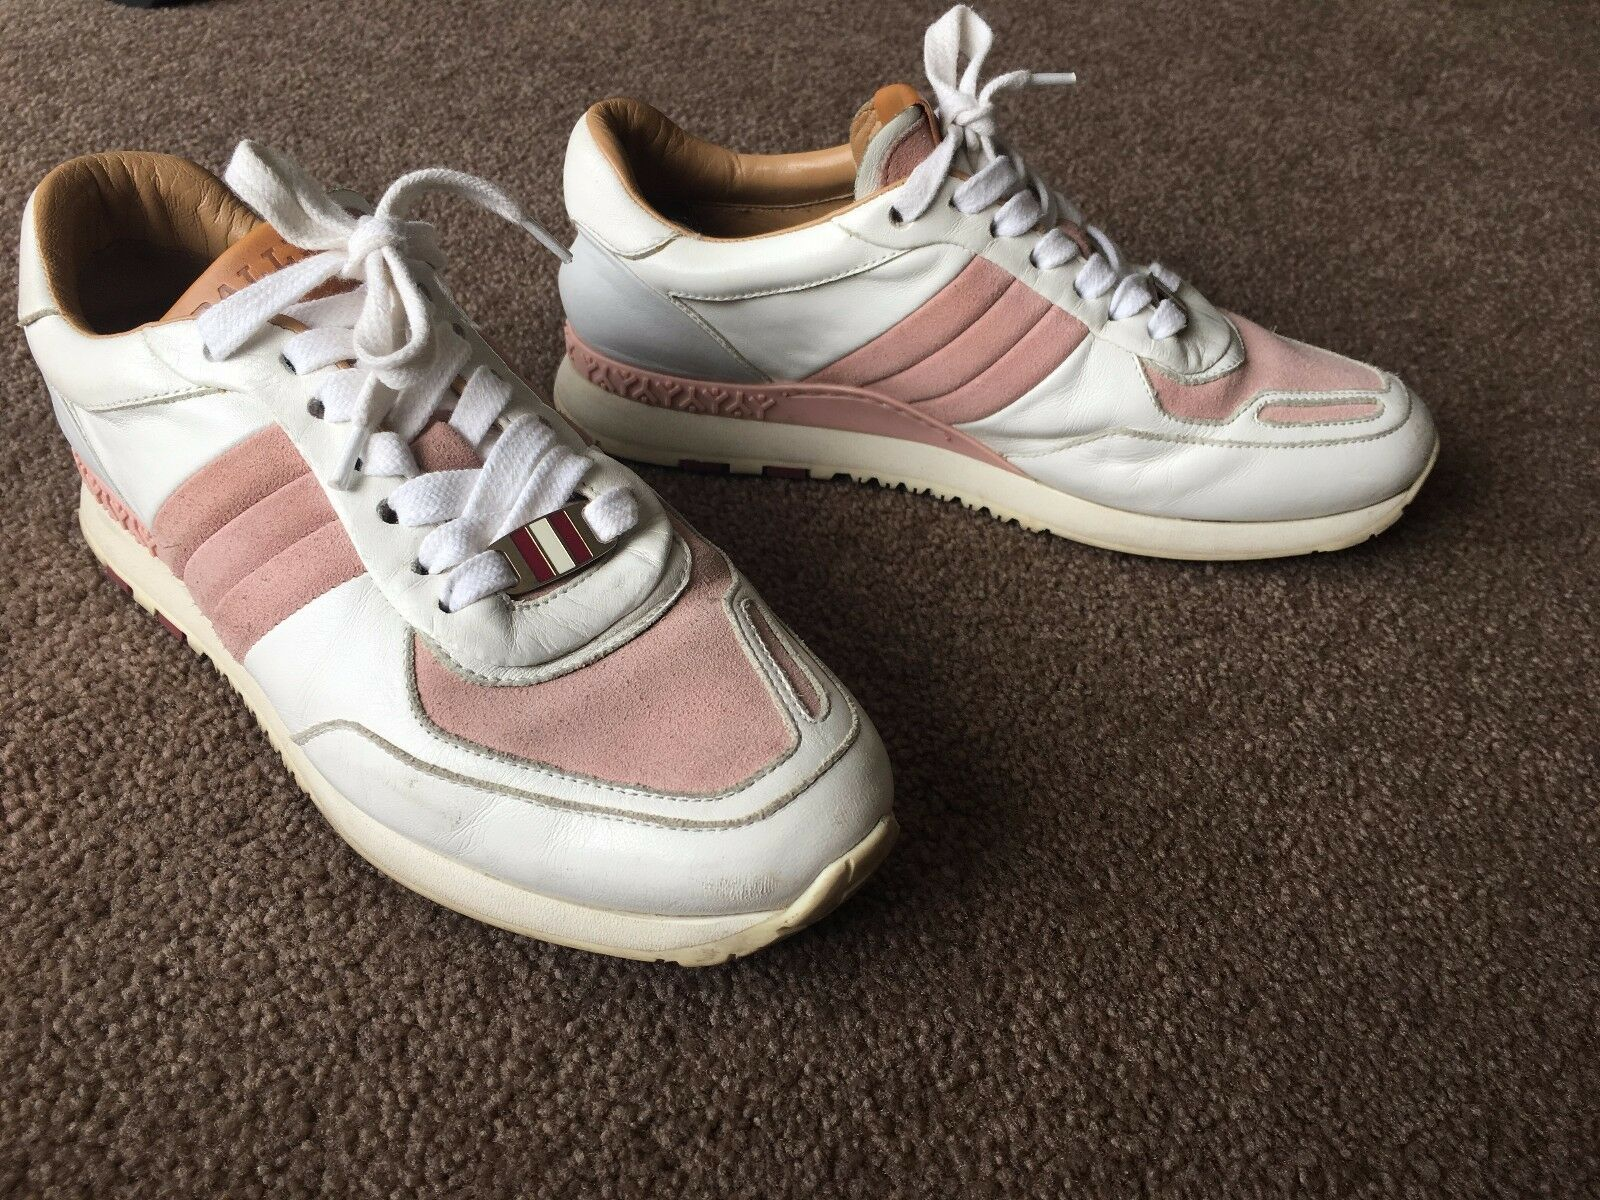 AUTH BALLY ASYIA SNEAKERS Sz 6 FITS Sz 6 US